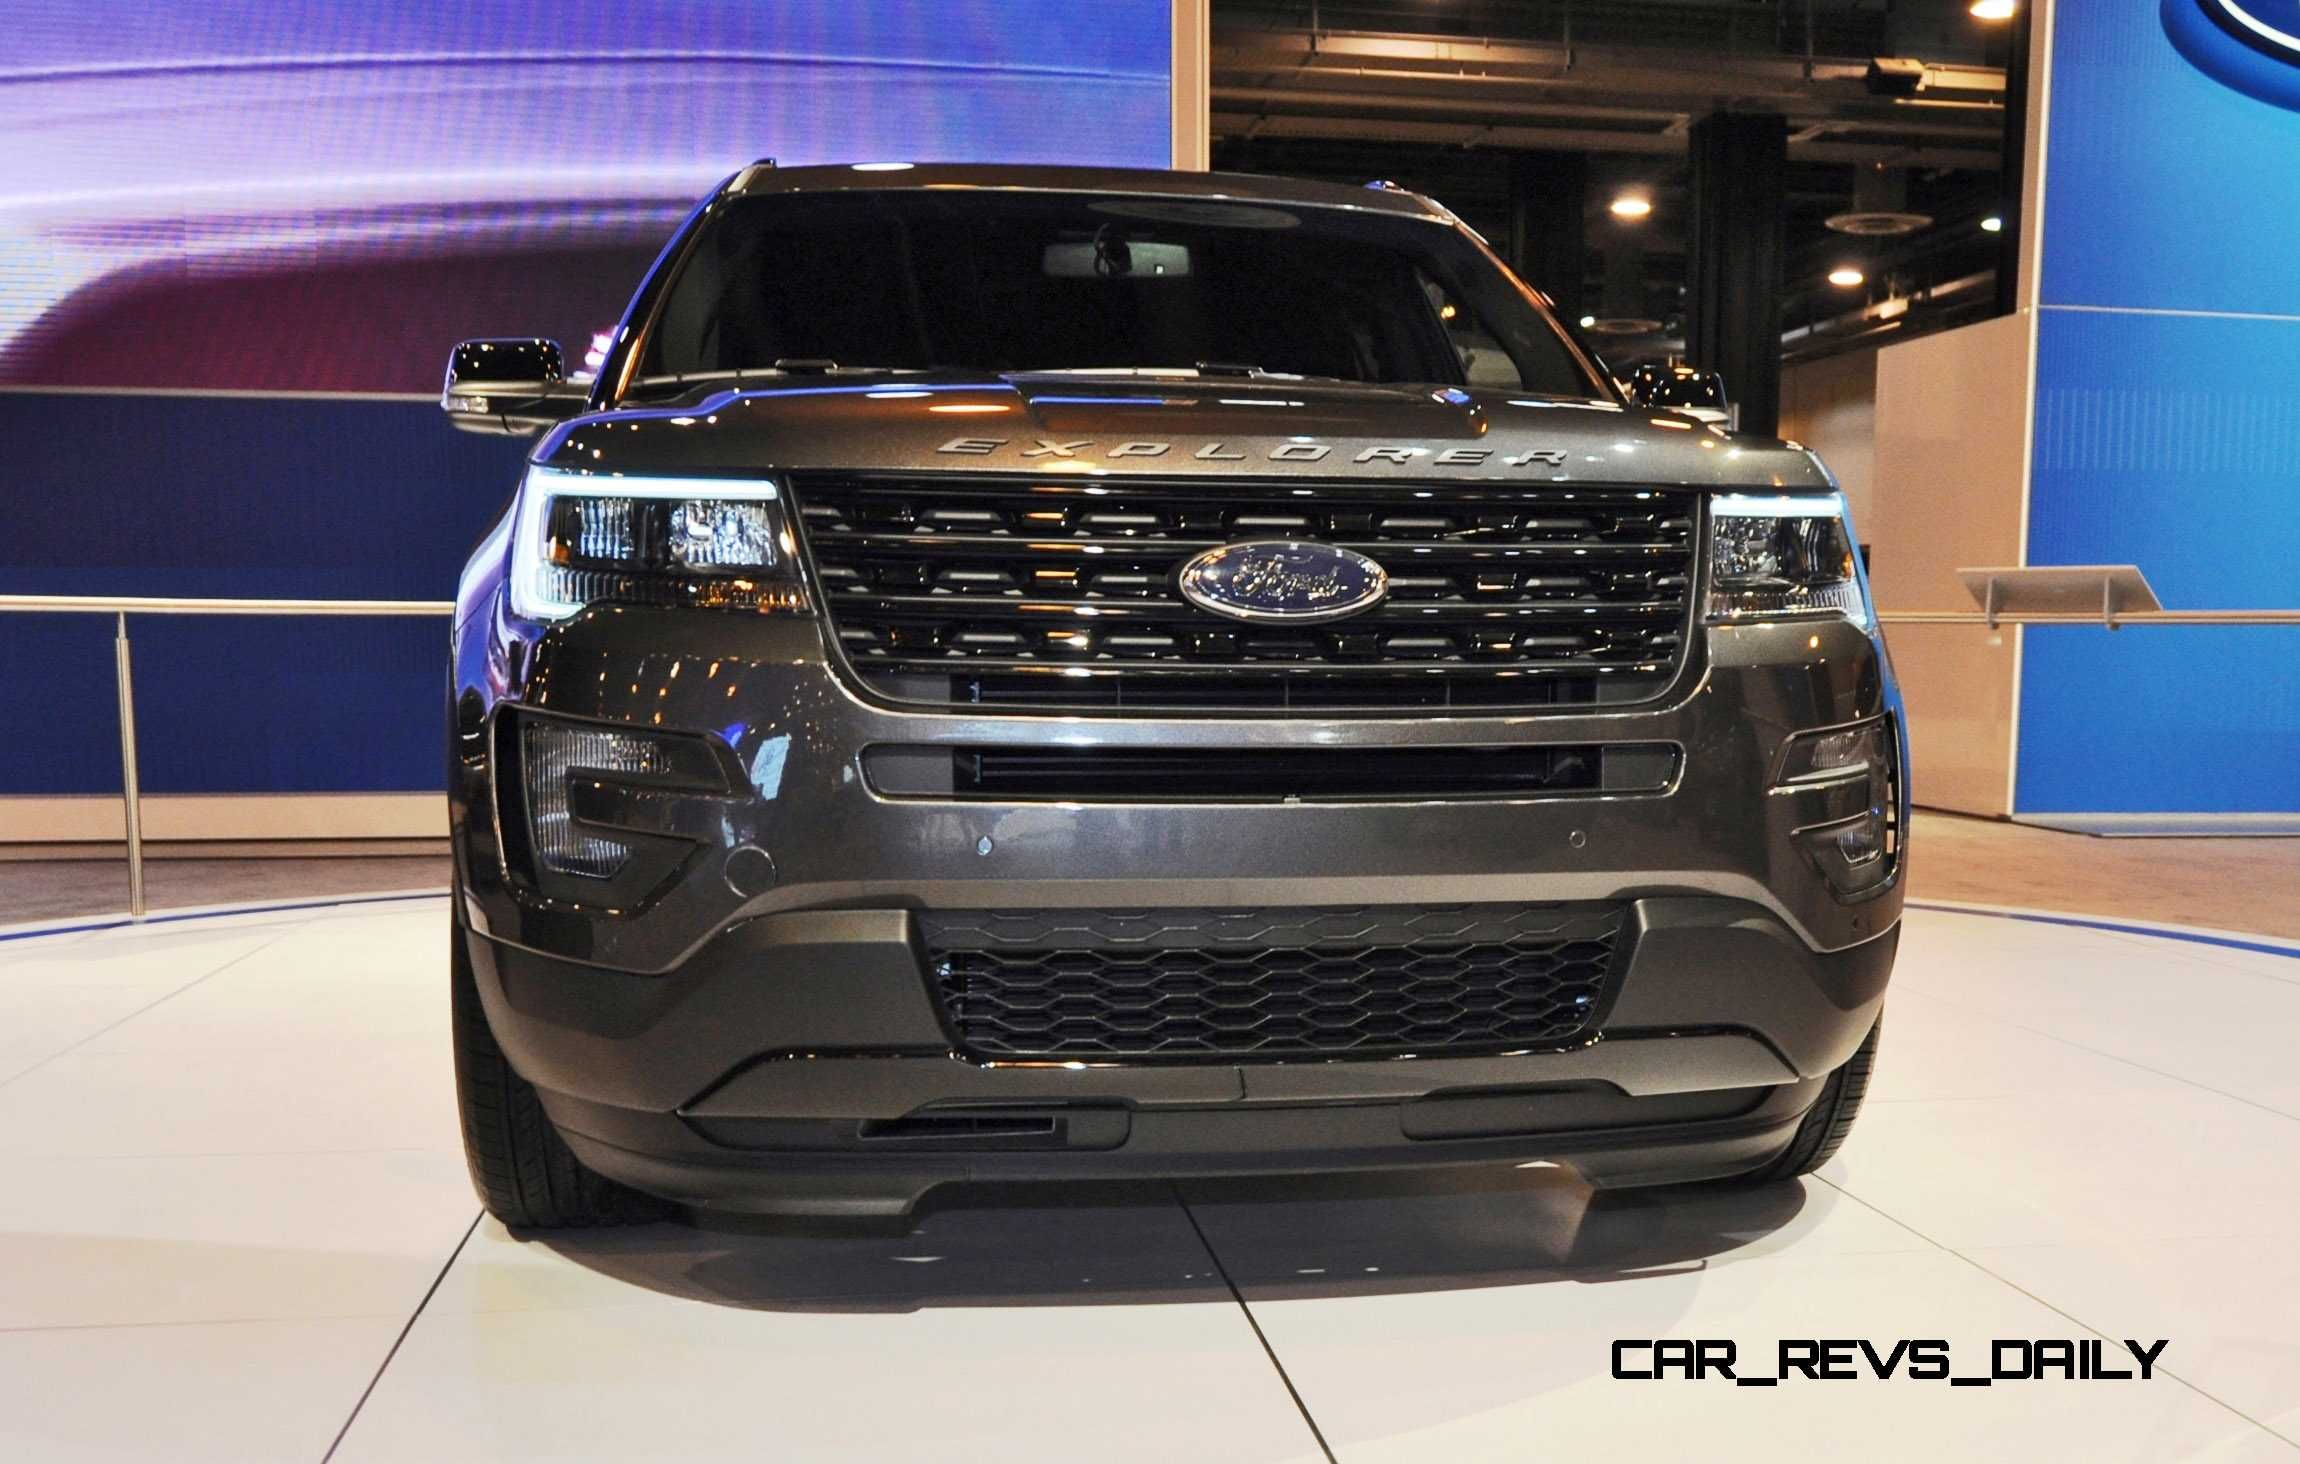 ford - New 2015 Ford Explorer Black Color